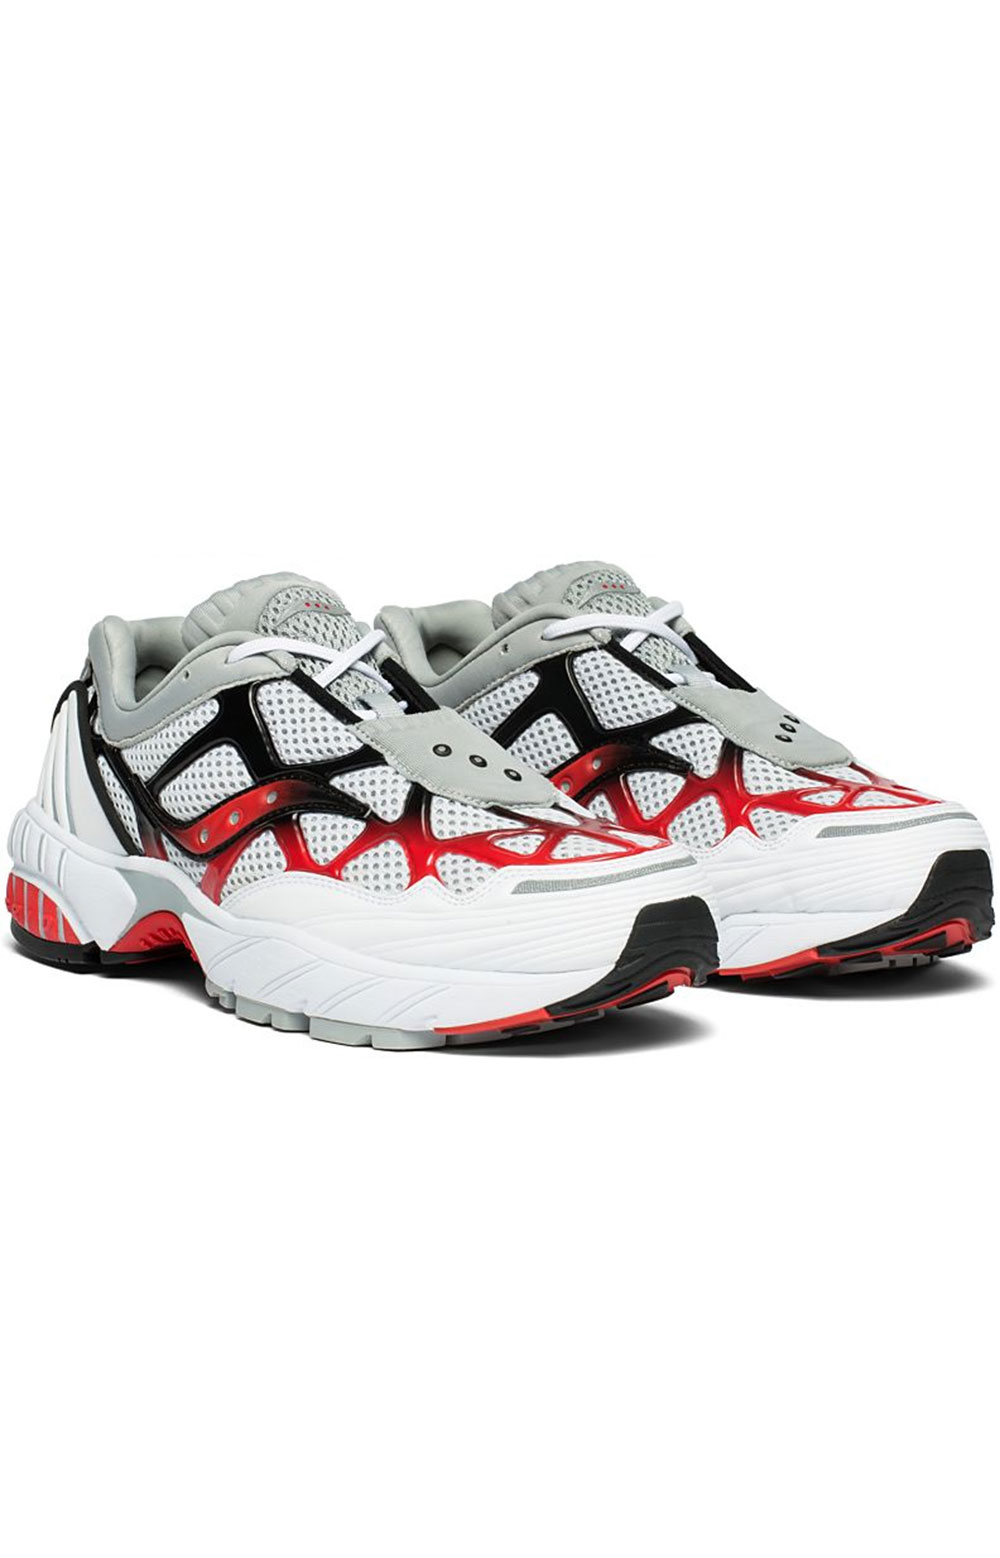 (S70466-2) Grid Web Shoe - White/Grey/Red 2